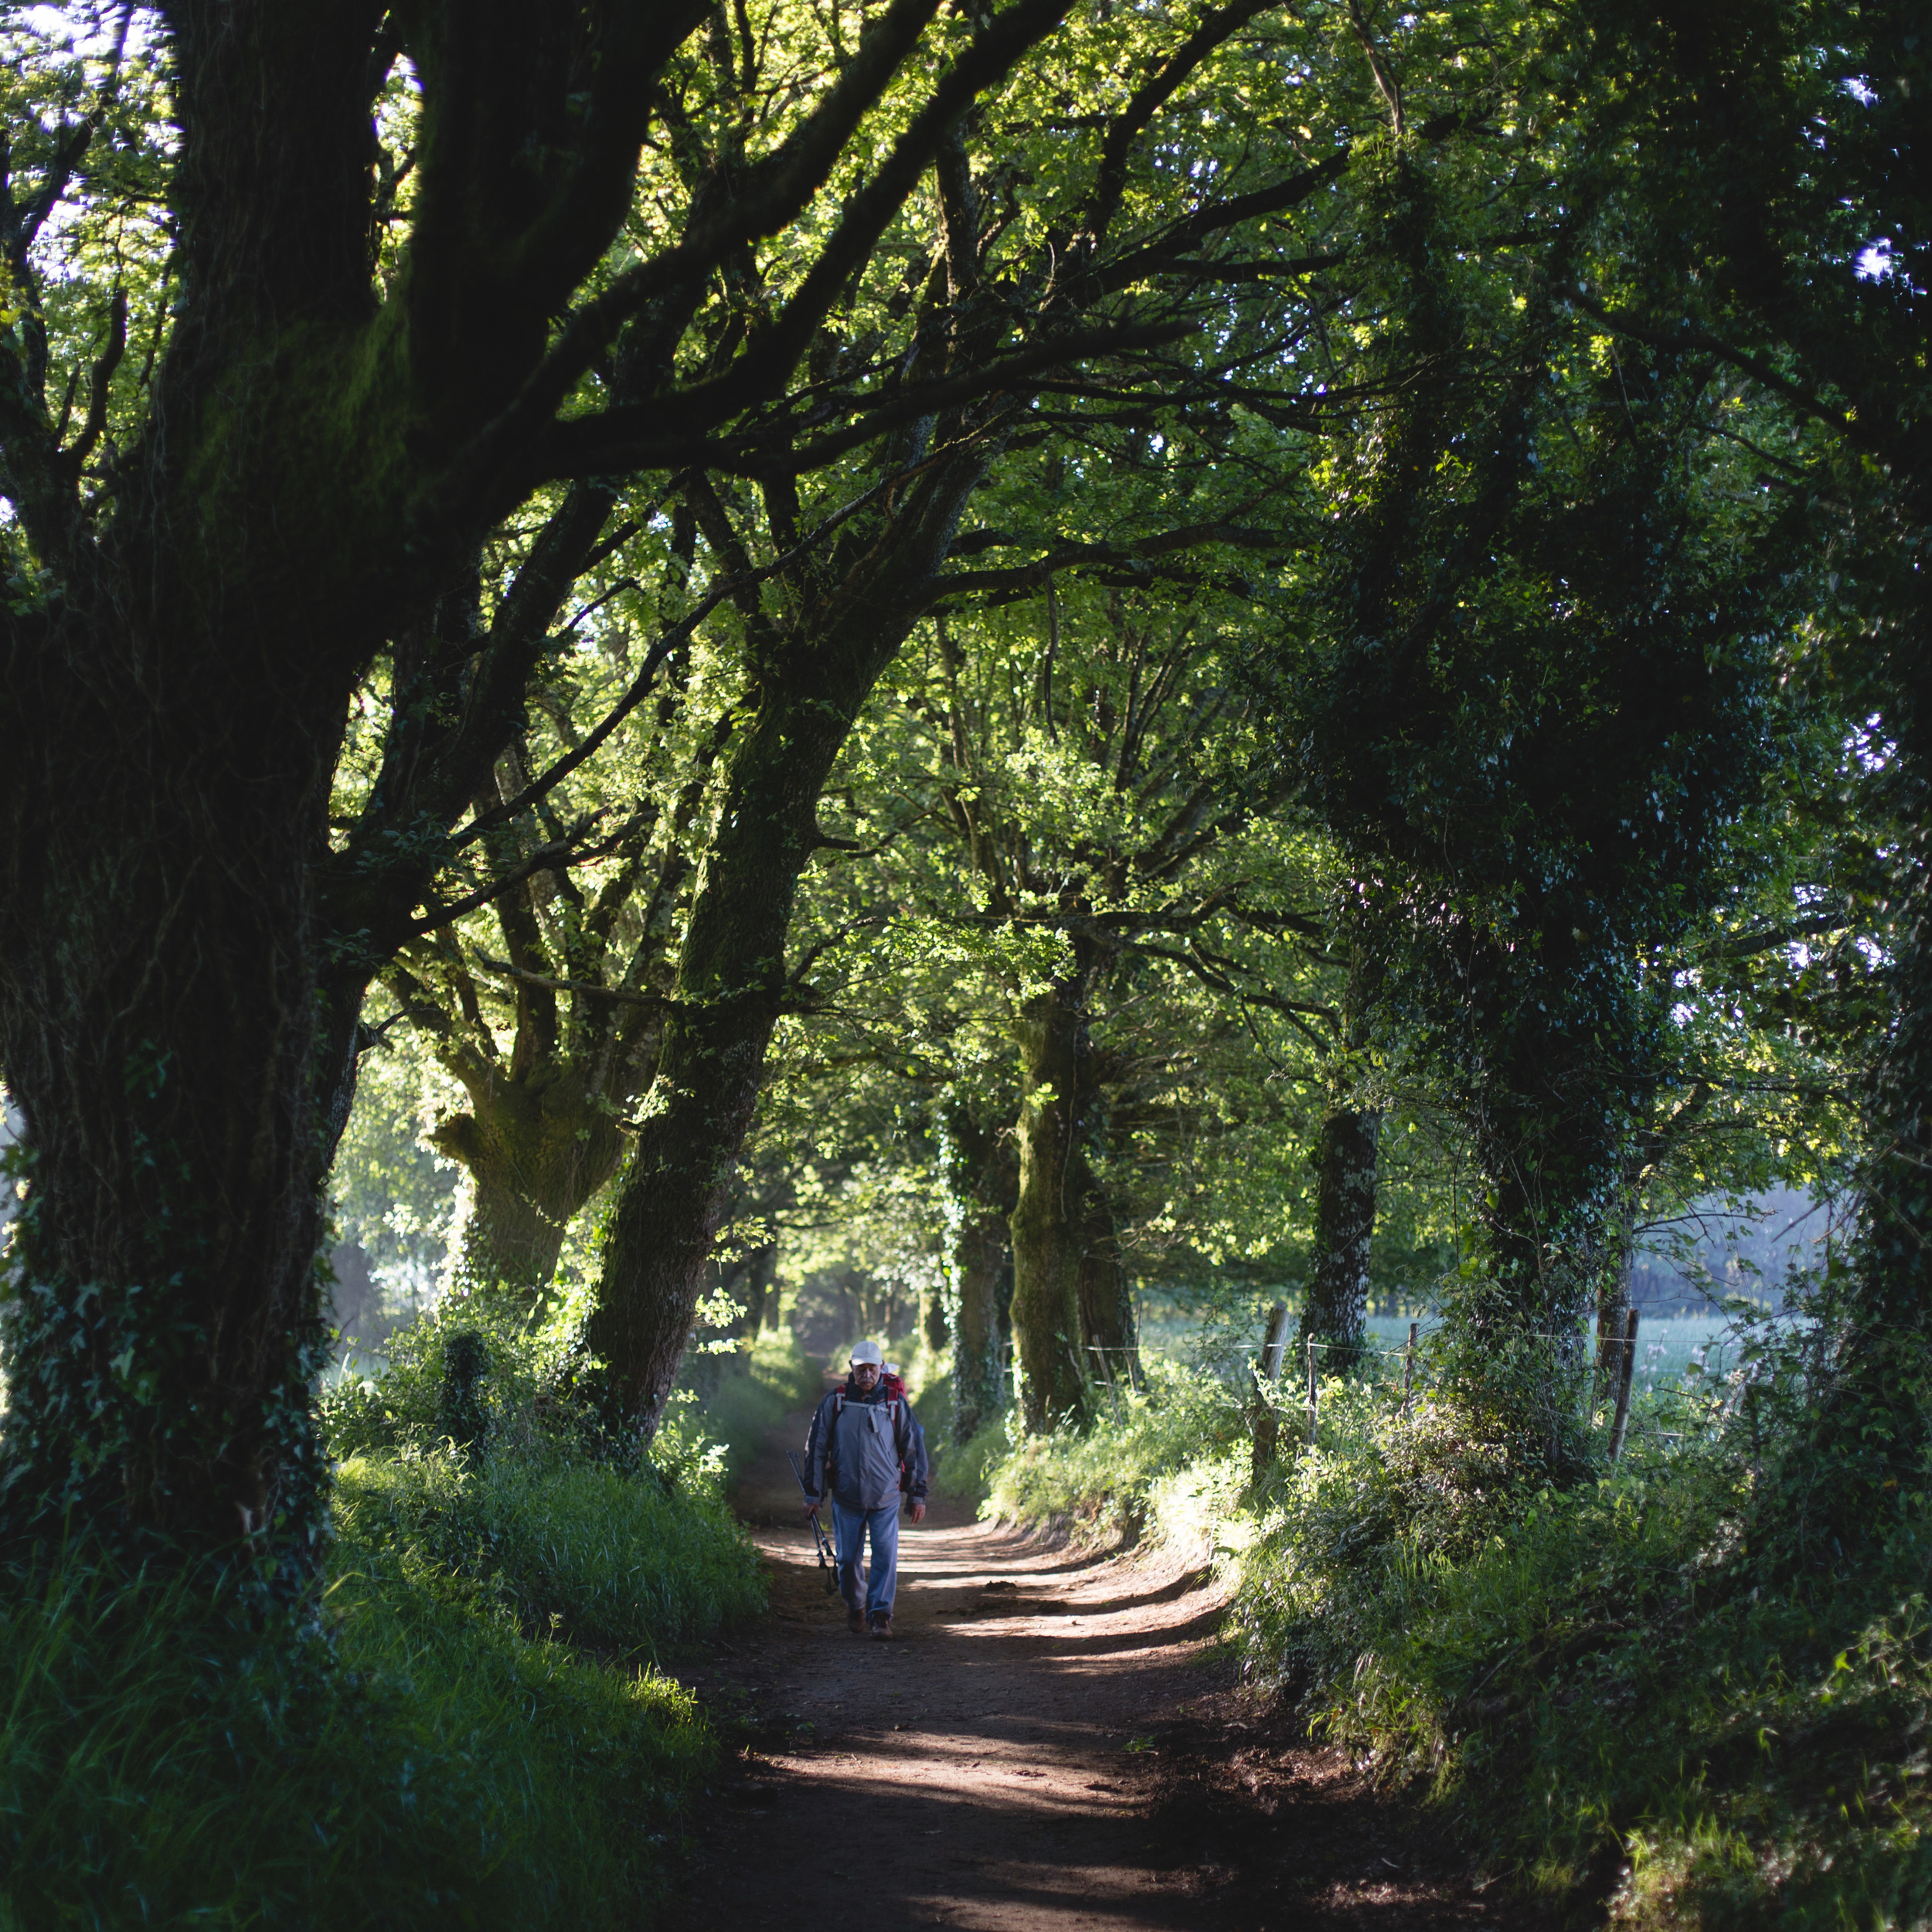 A pilgrim walking through the woods along the Camino.